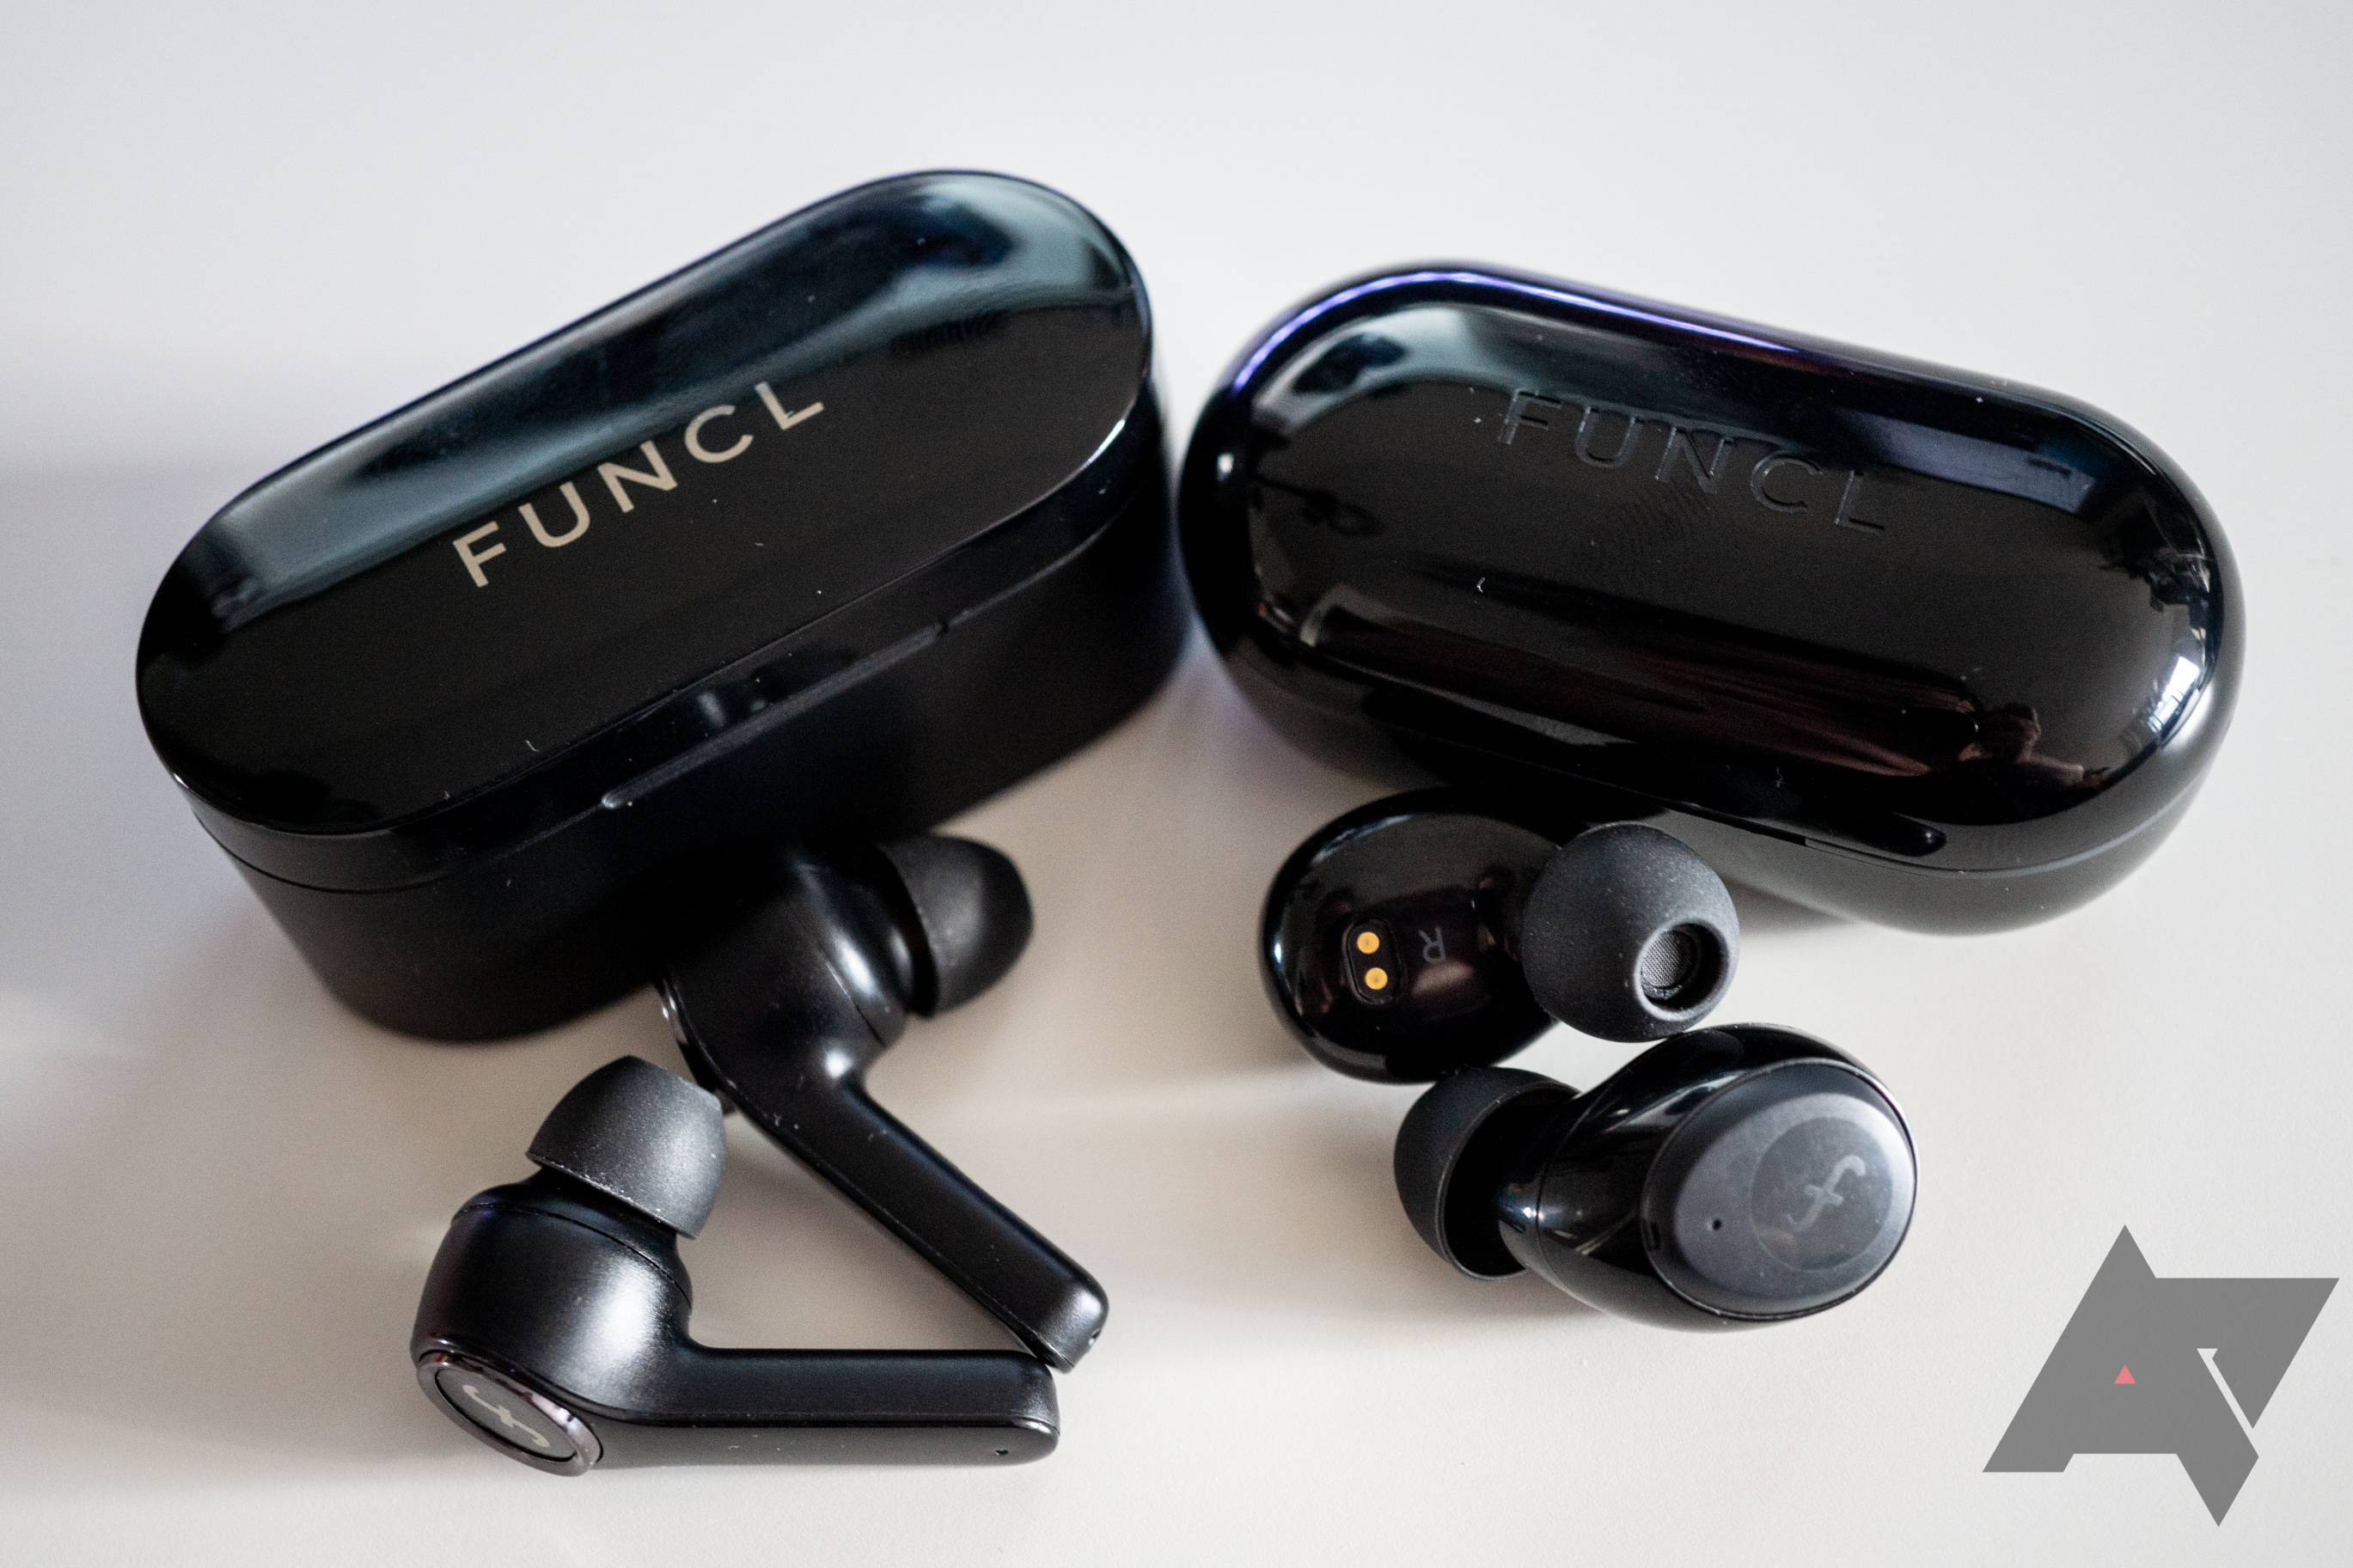 f6ab11e35d4 Last week a brand we'd never heard of called Funcl announced an Indiegogo  campaign for two pairs of so-called